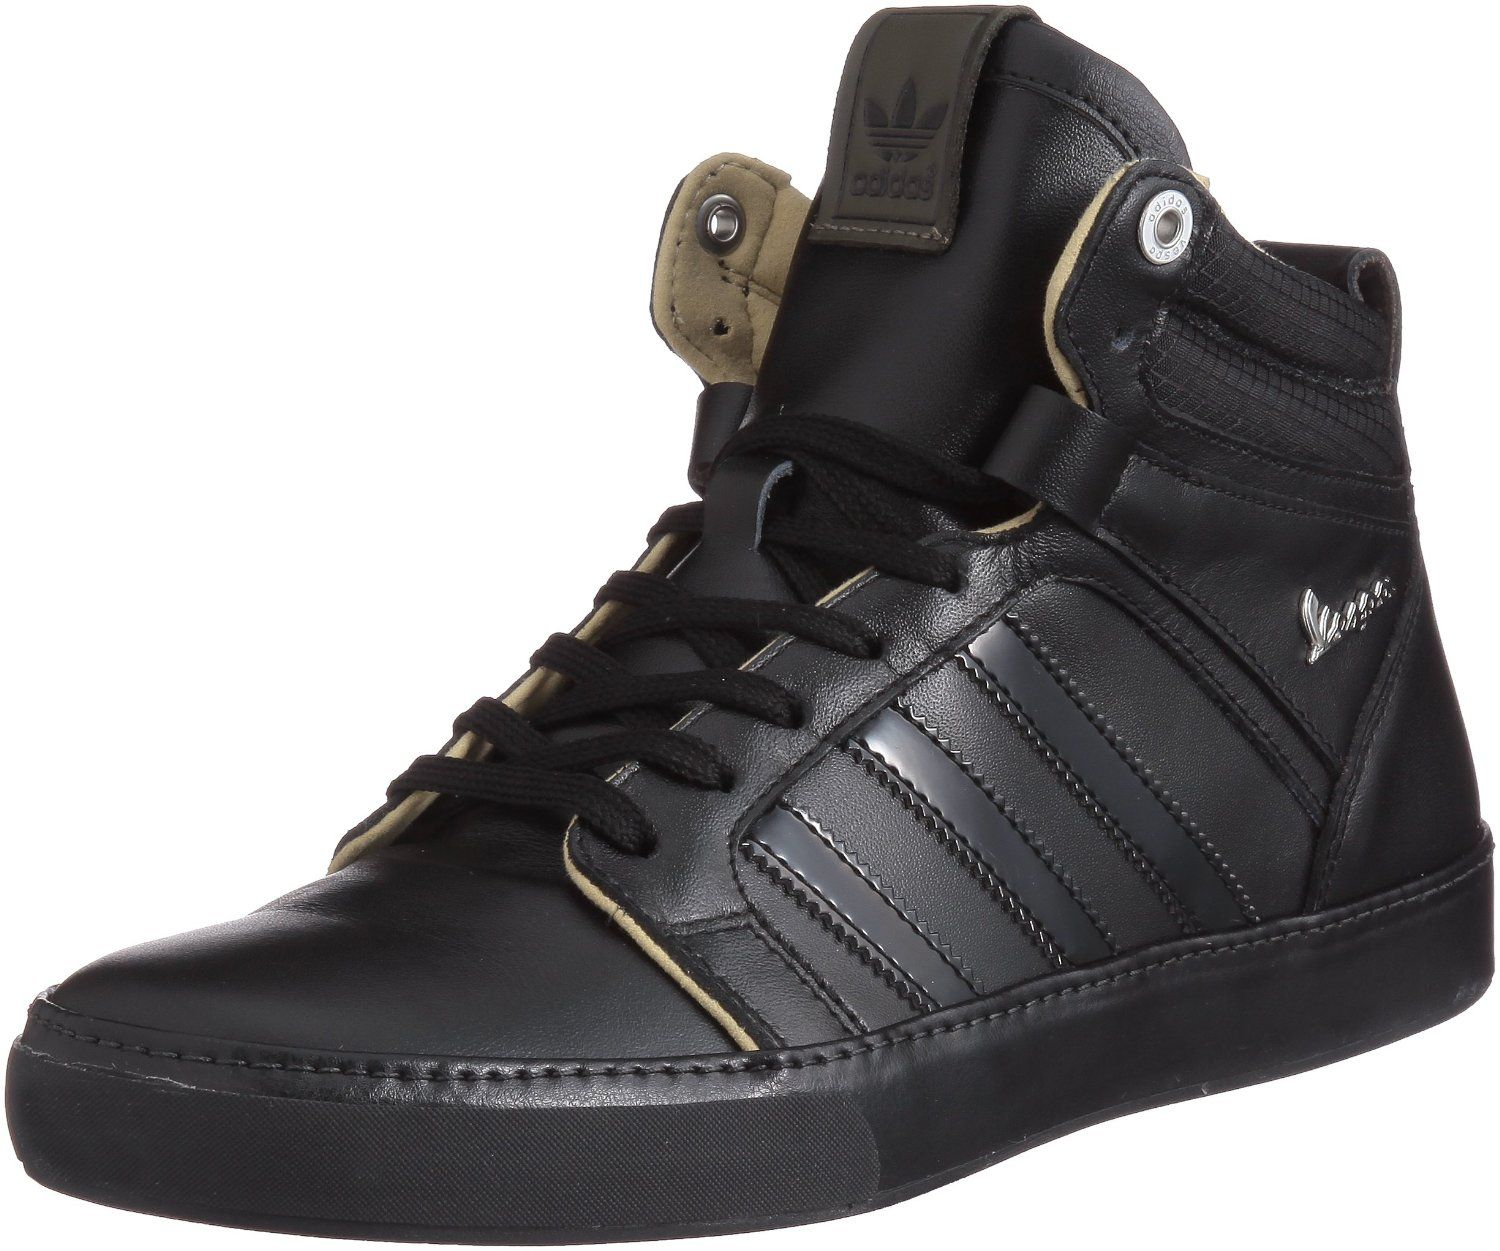 Adidas Vespa PX 2 Finally a proud owner | Mens clothing styles